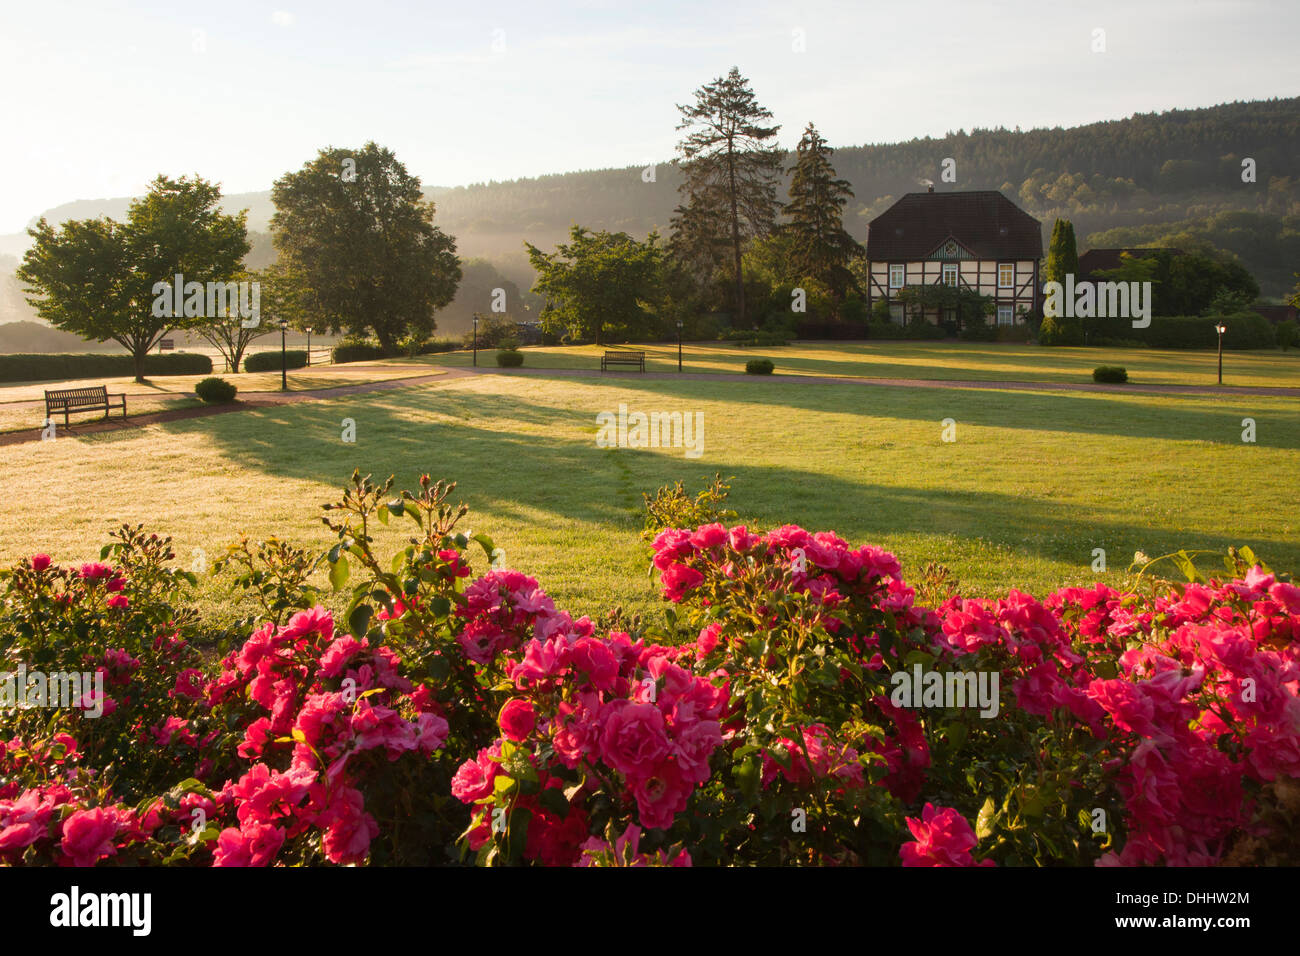 Roses at the gardens of Haemelschenburg castle, Emmerthal, Weser Hills, North Lower Saxony, Germany, Europe Stock Photo